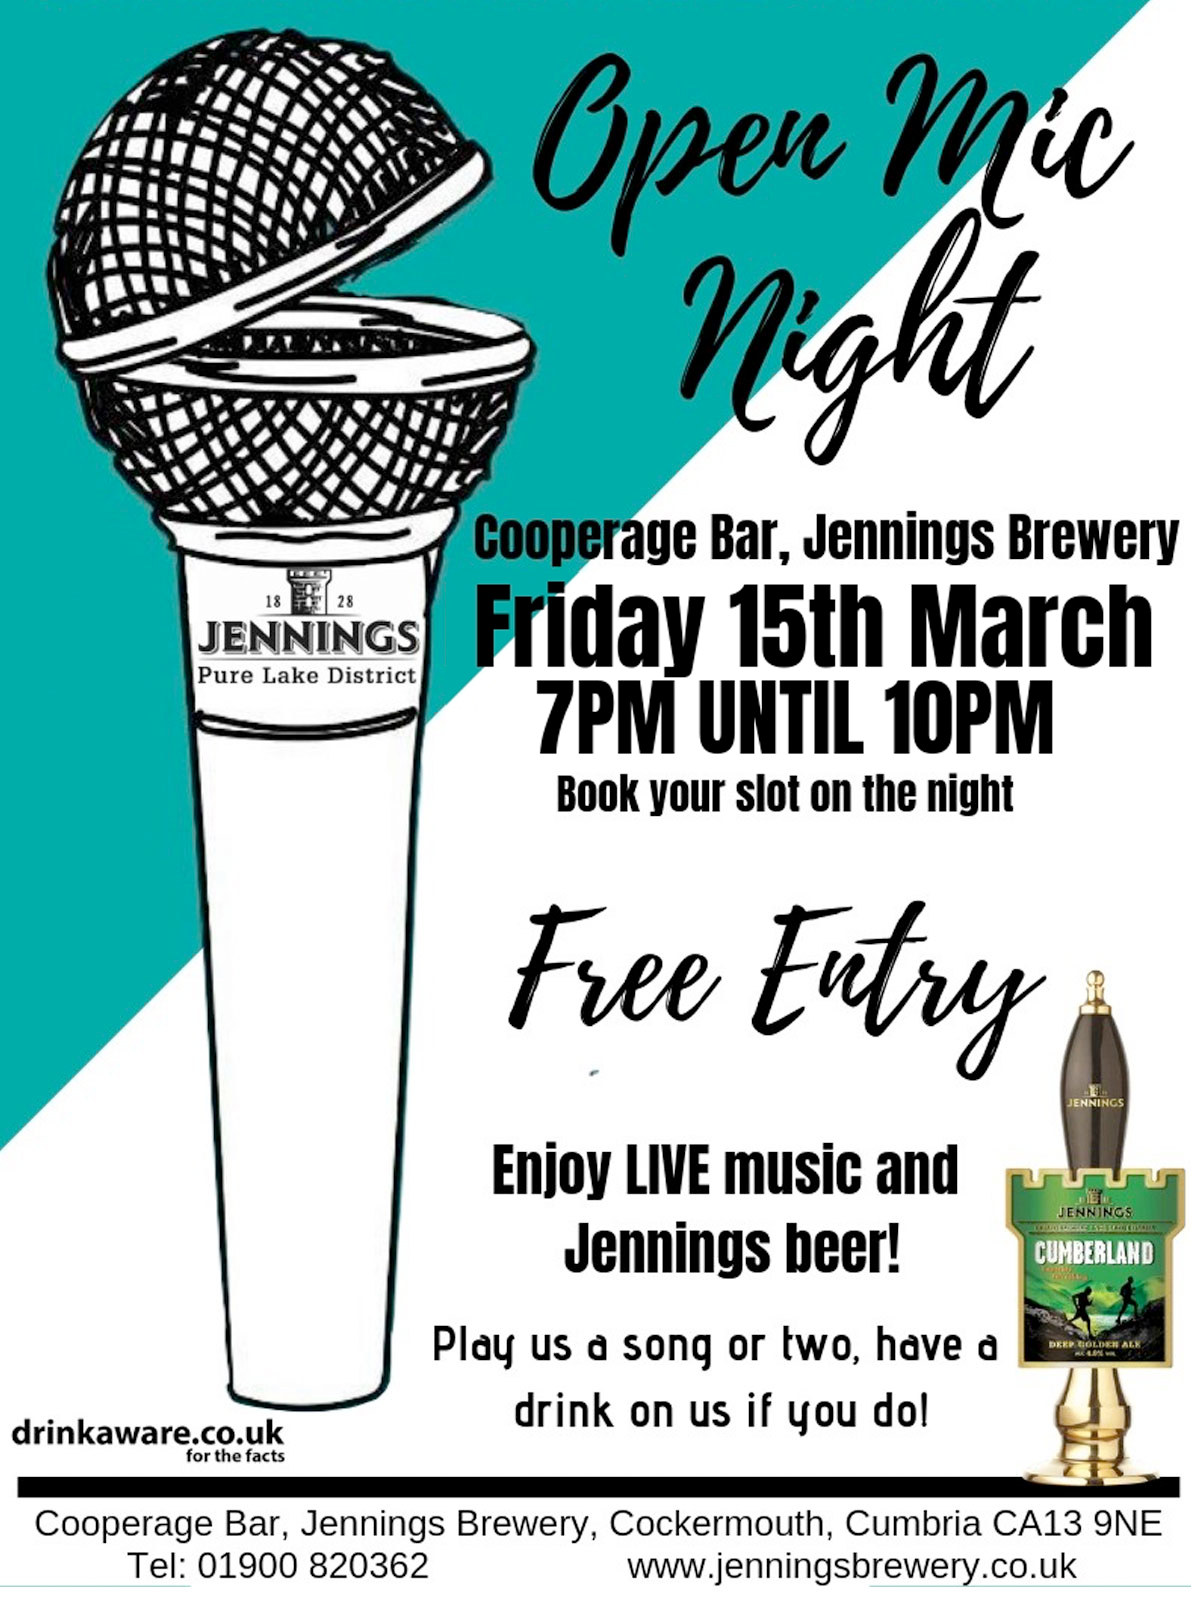 Jennings presents its first Open Mic night on Friday 15th March